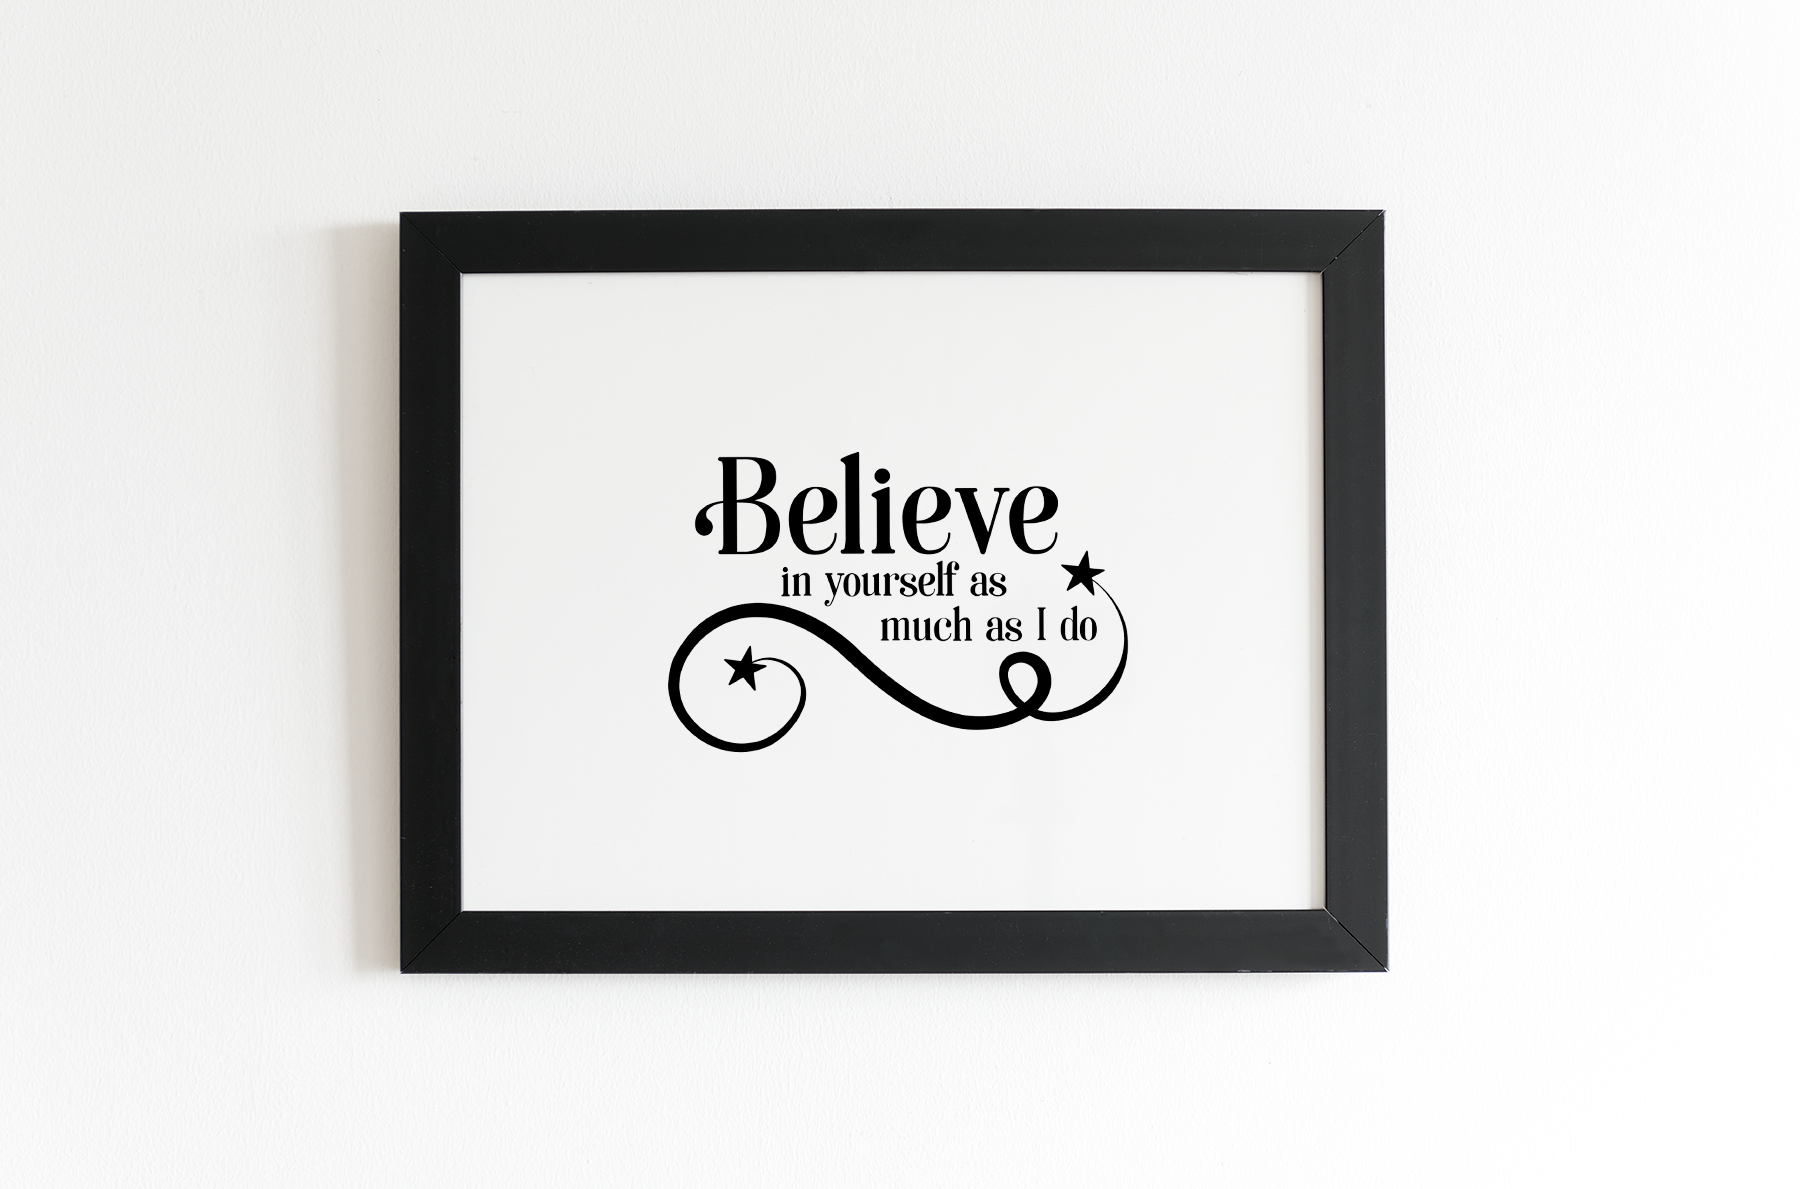 Believe in Yourself as Much as I Do, An Inspirational SVG example image 4